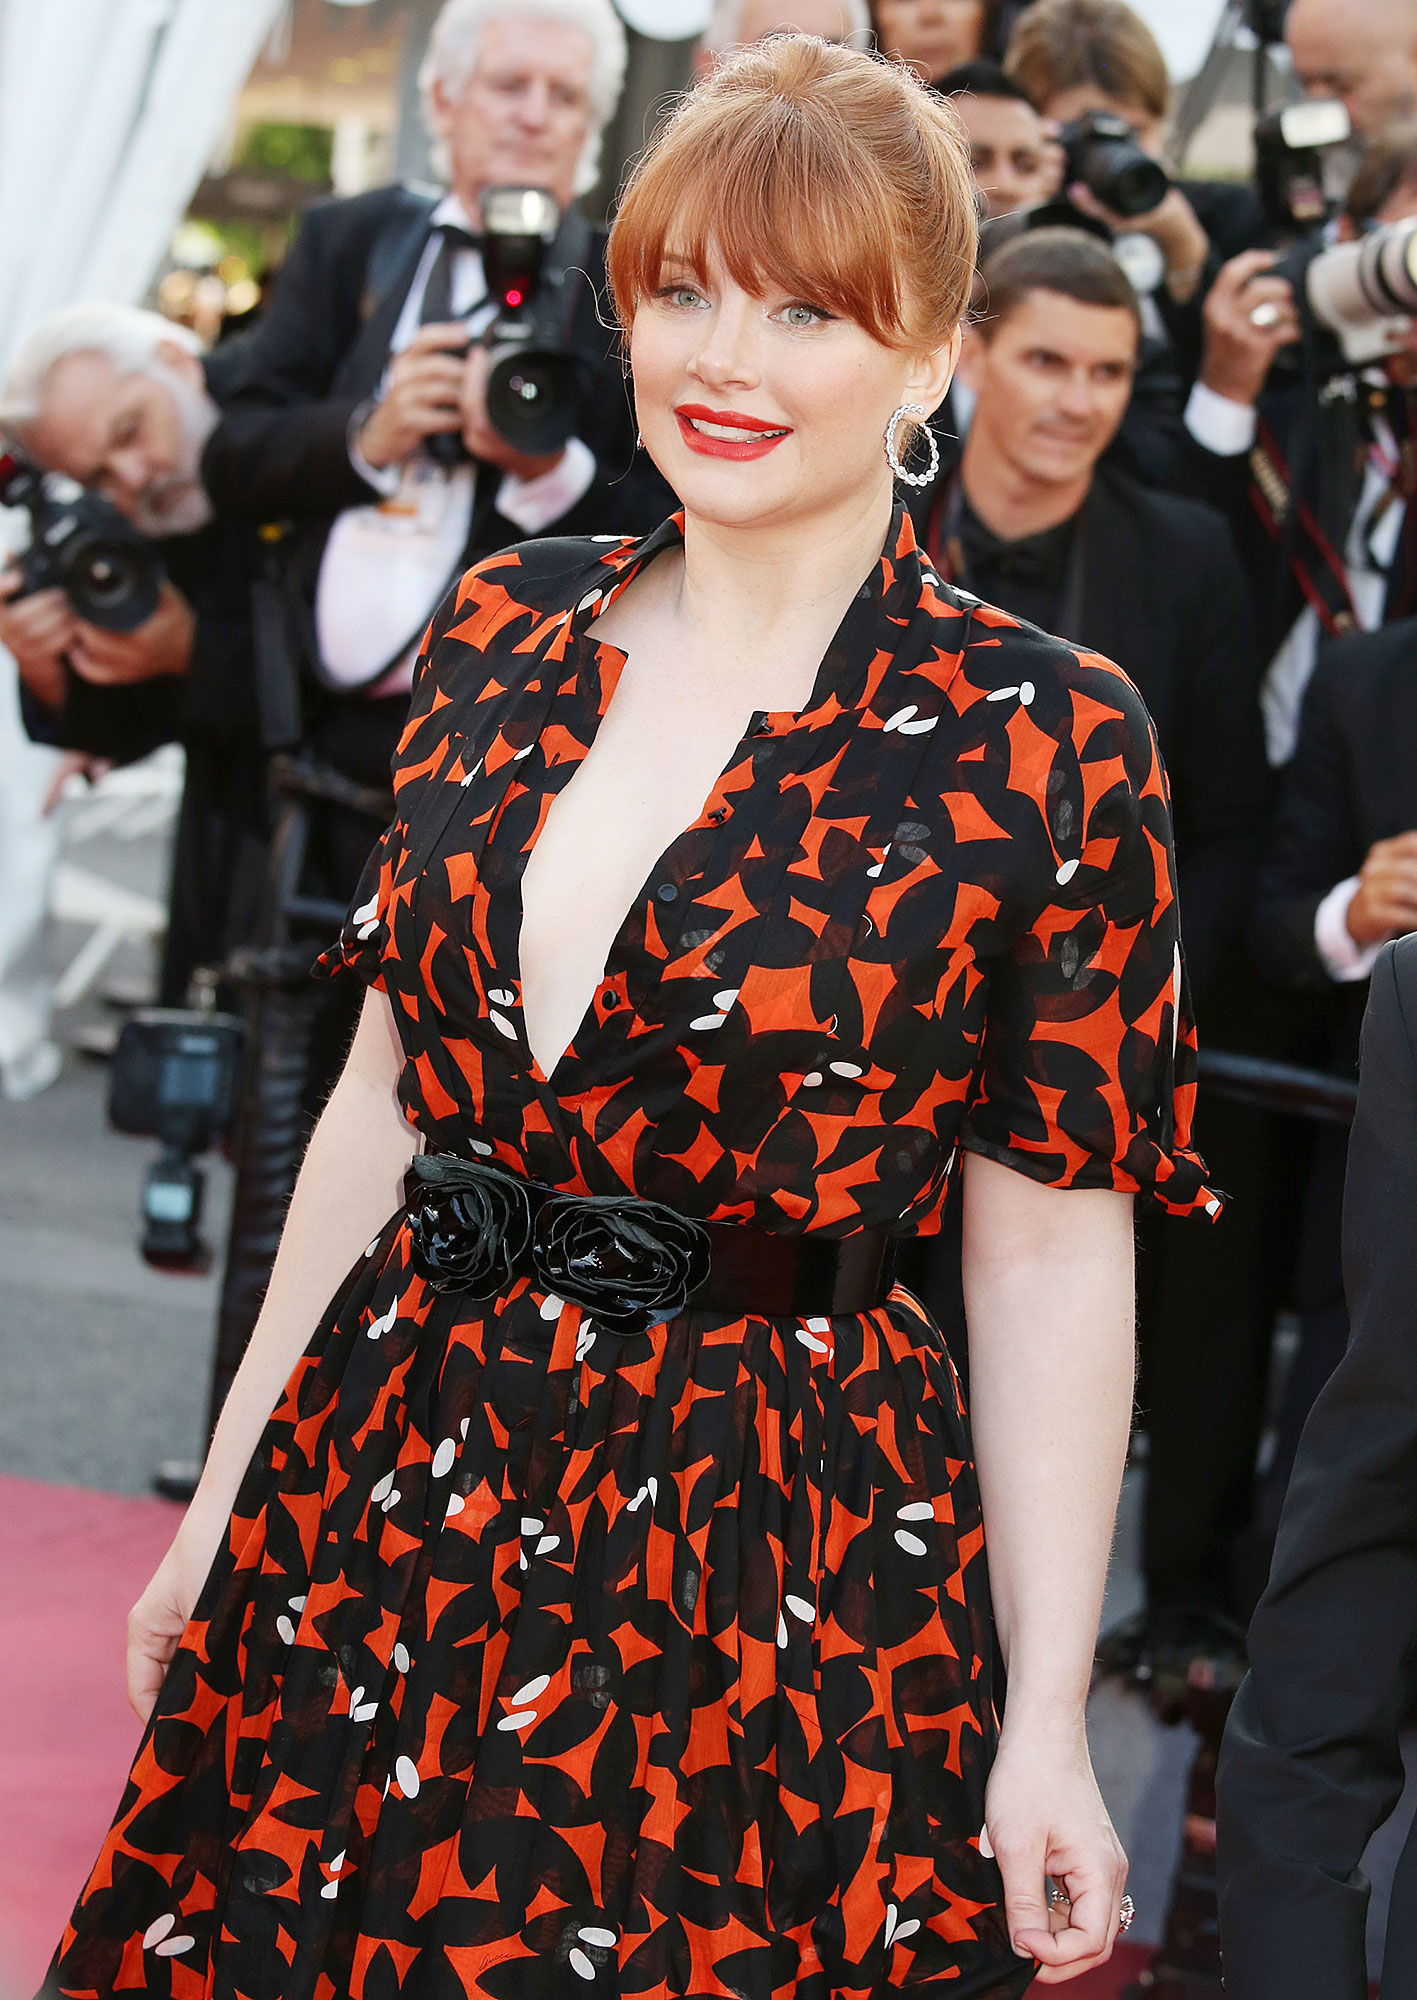 """Bryce Dallas Howard Cannes Film Festival Real Real Consignment - Bryce Dallas Howard departs from the screening of """"Rocketman"""" during the 72nd annual Cannes Film Festival on May 16, 2019 in Cannes, France."""